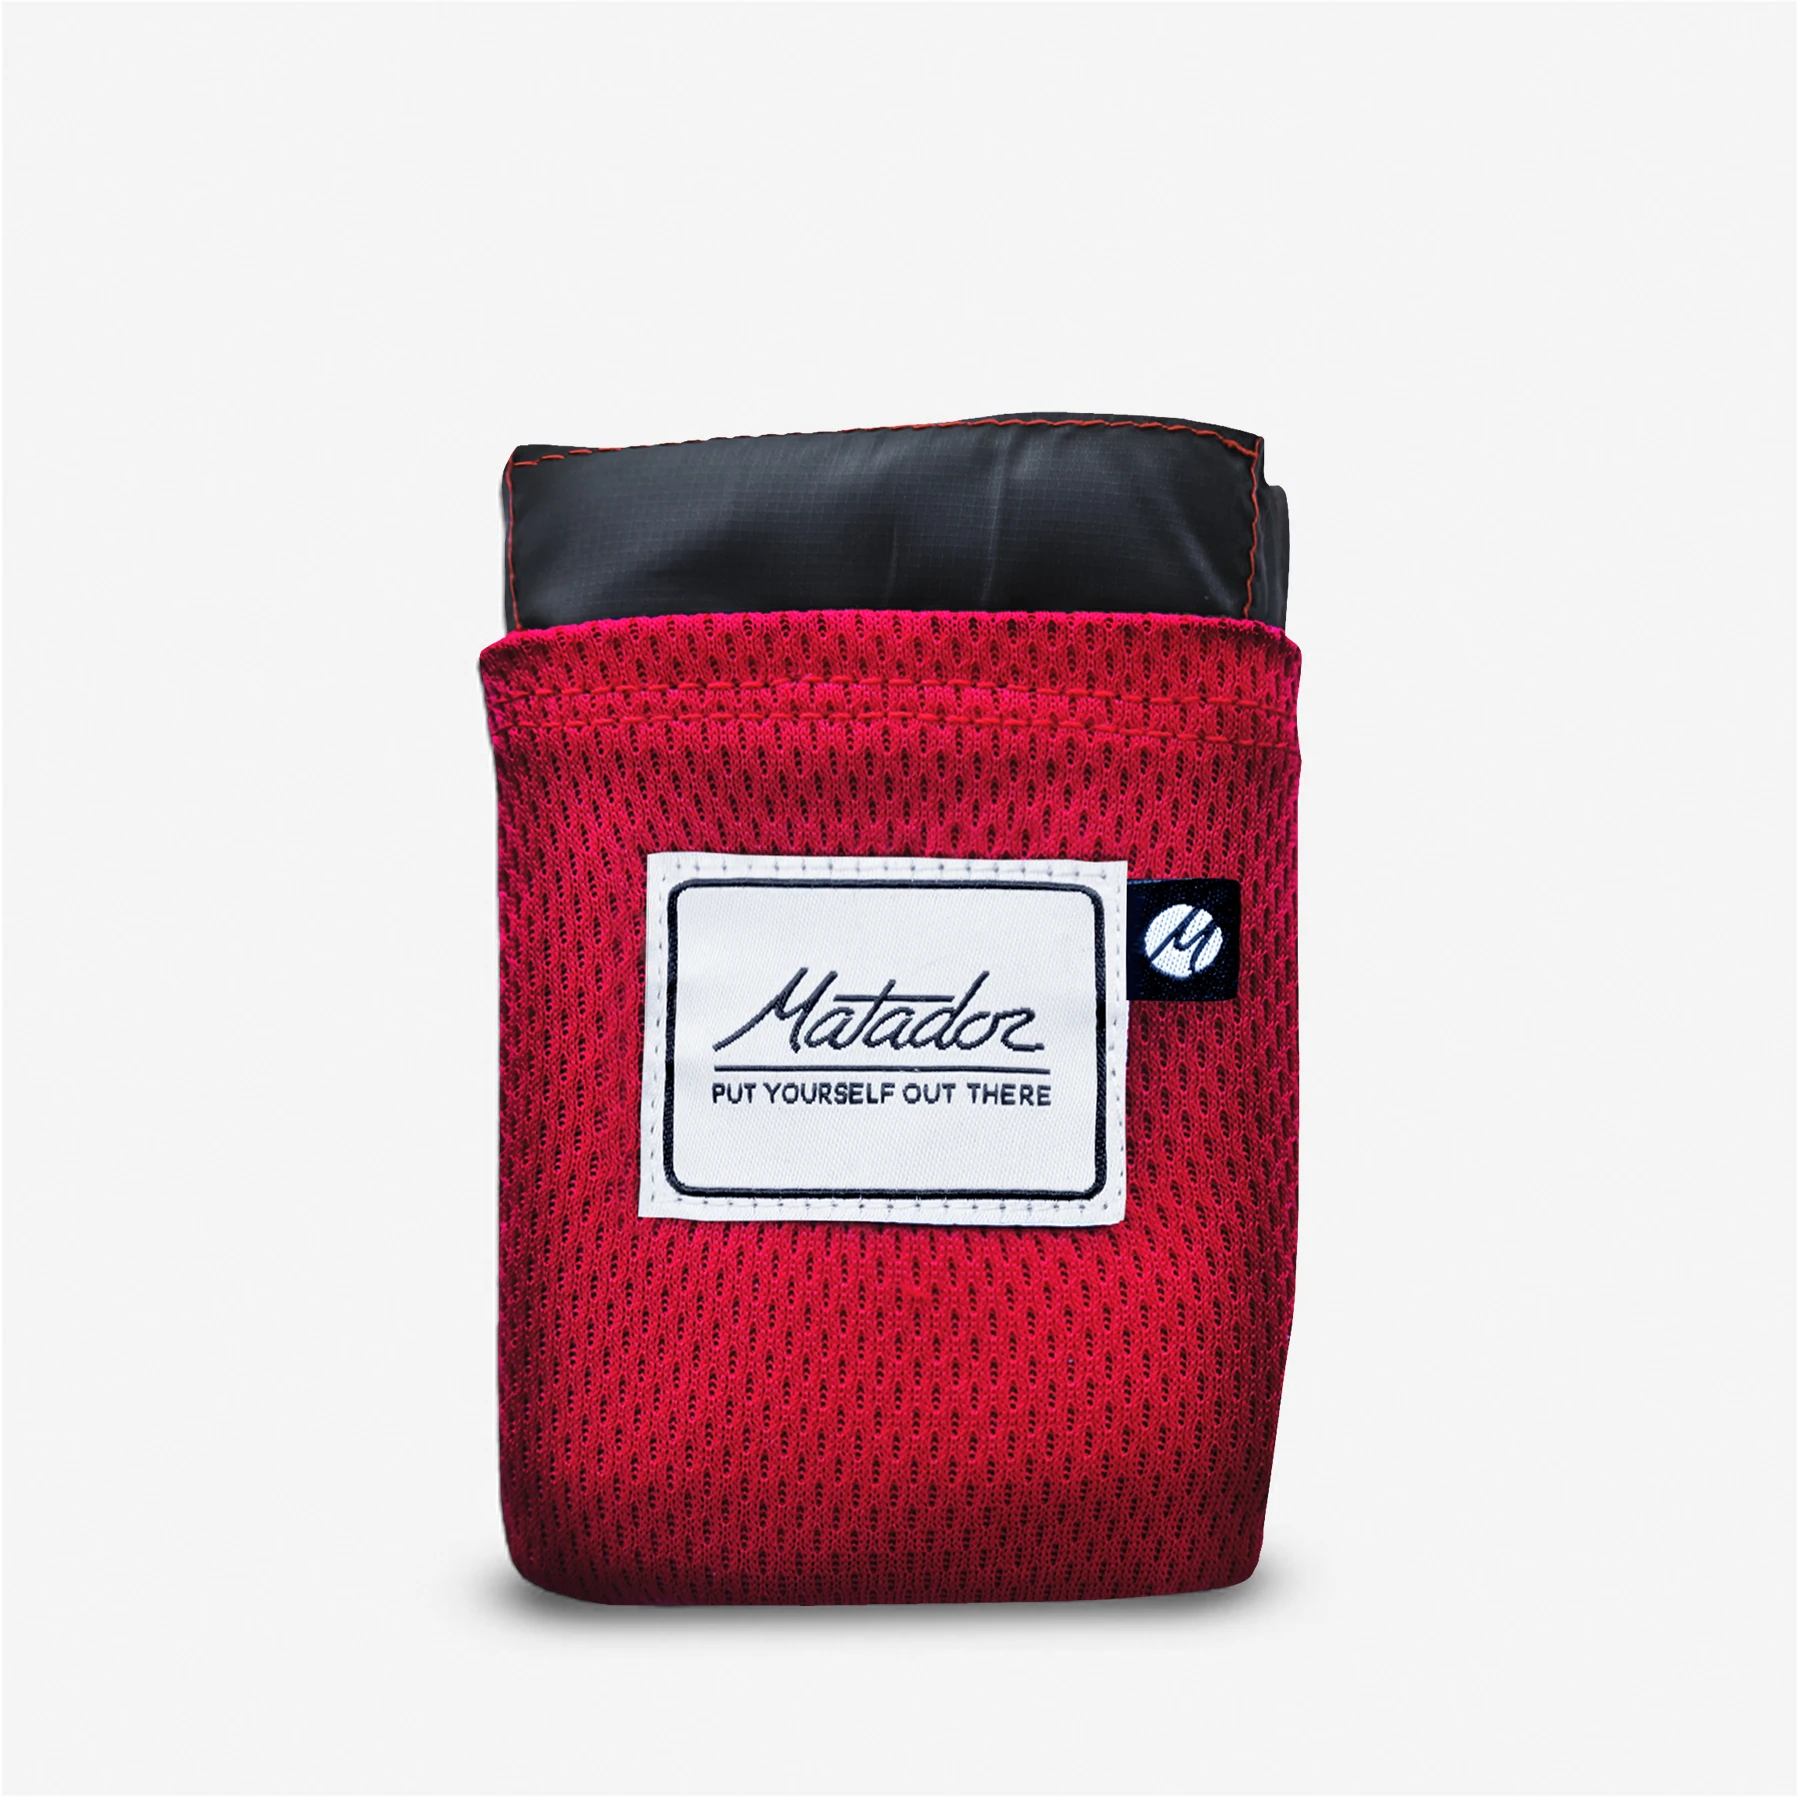 Matador Pocket Blanket 2.0 - Red